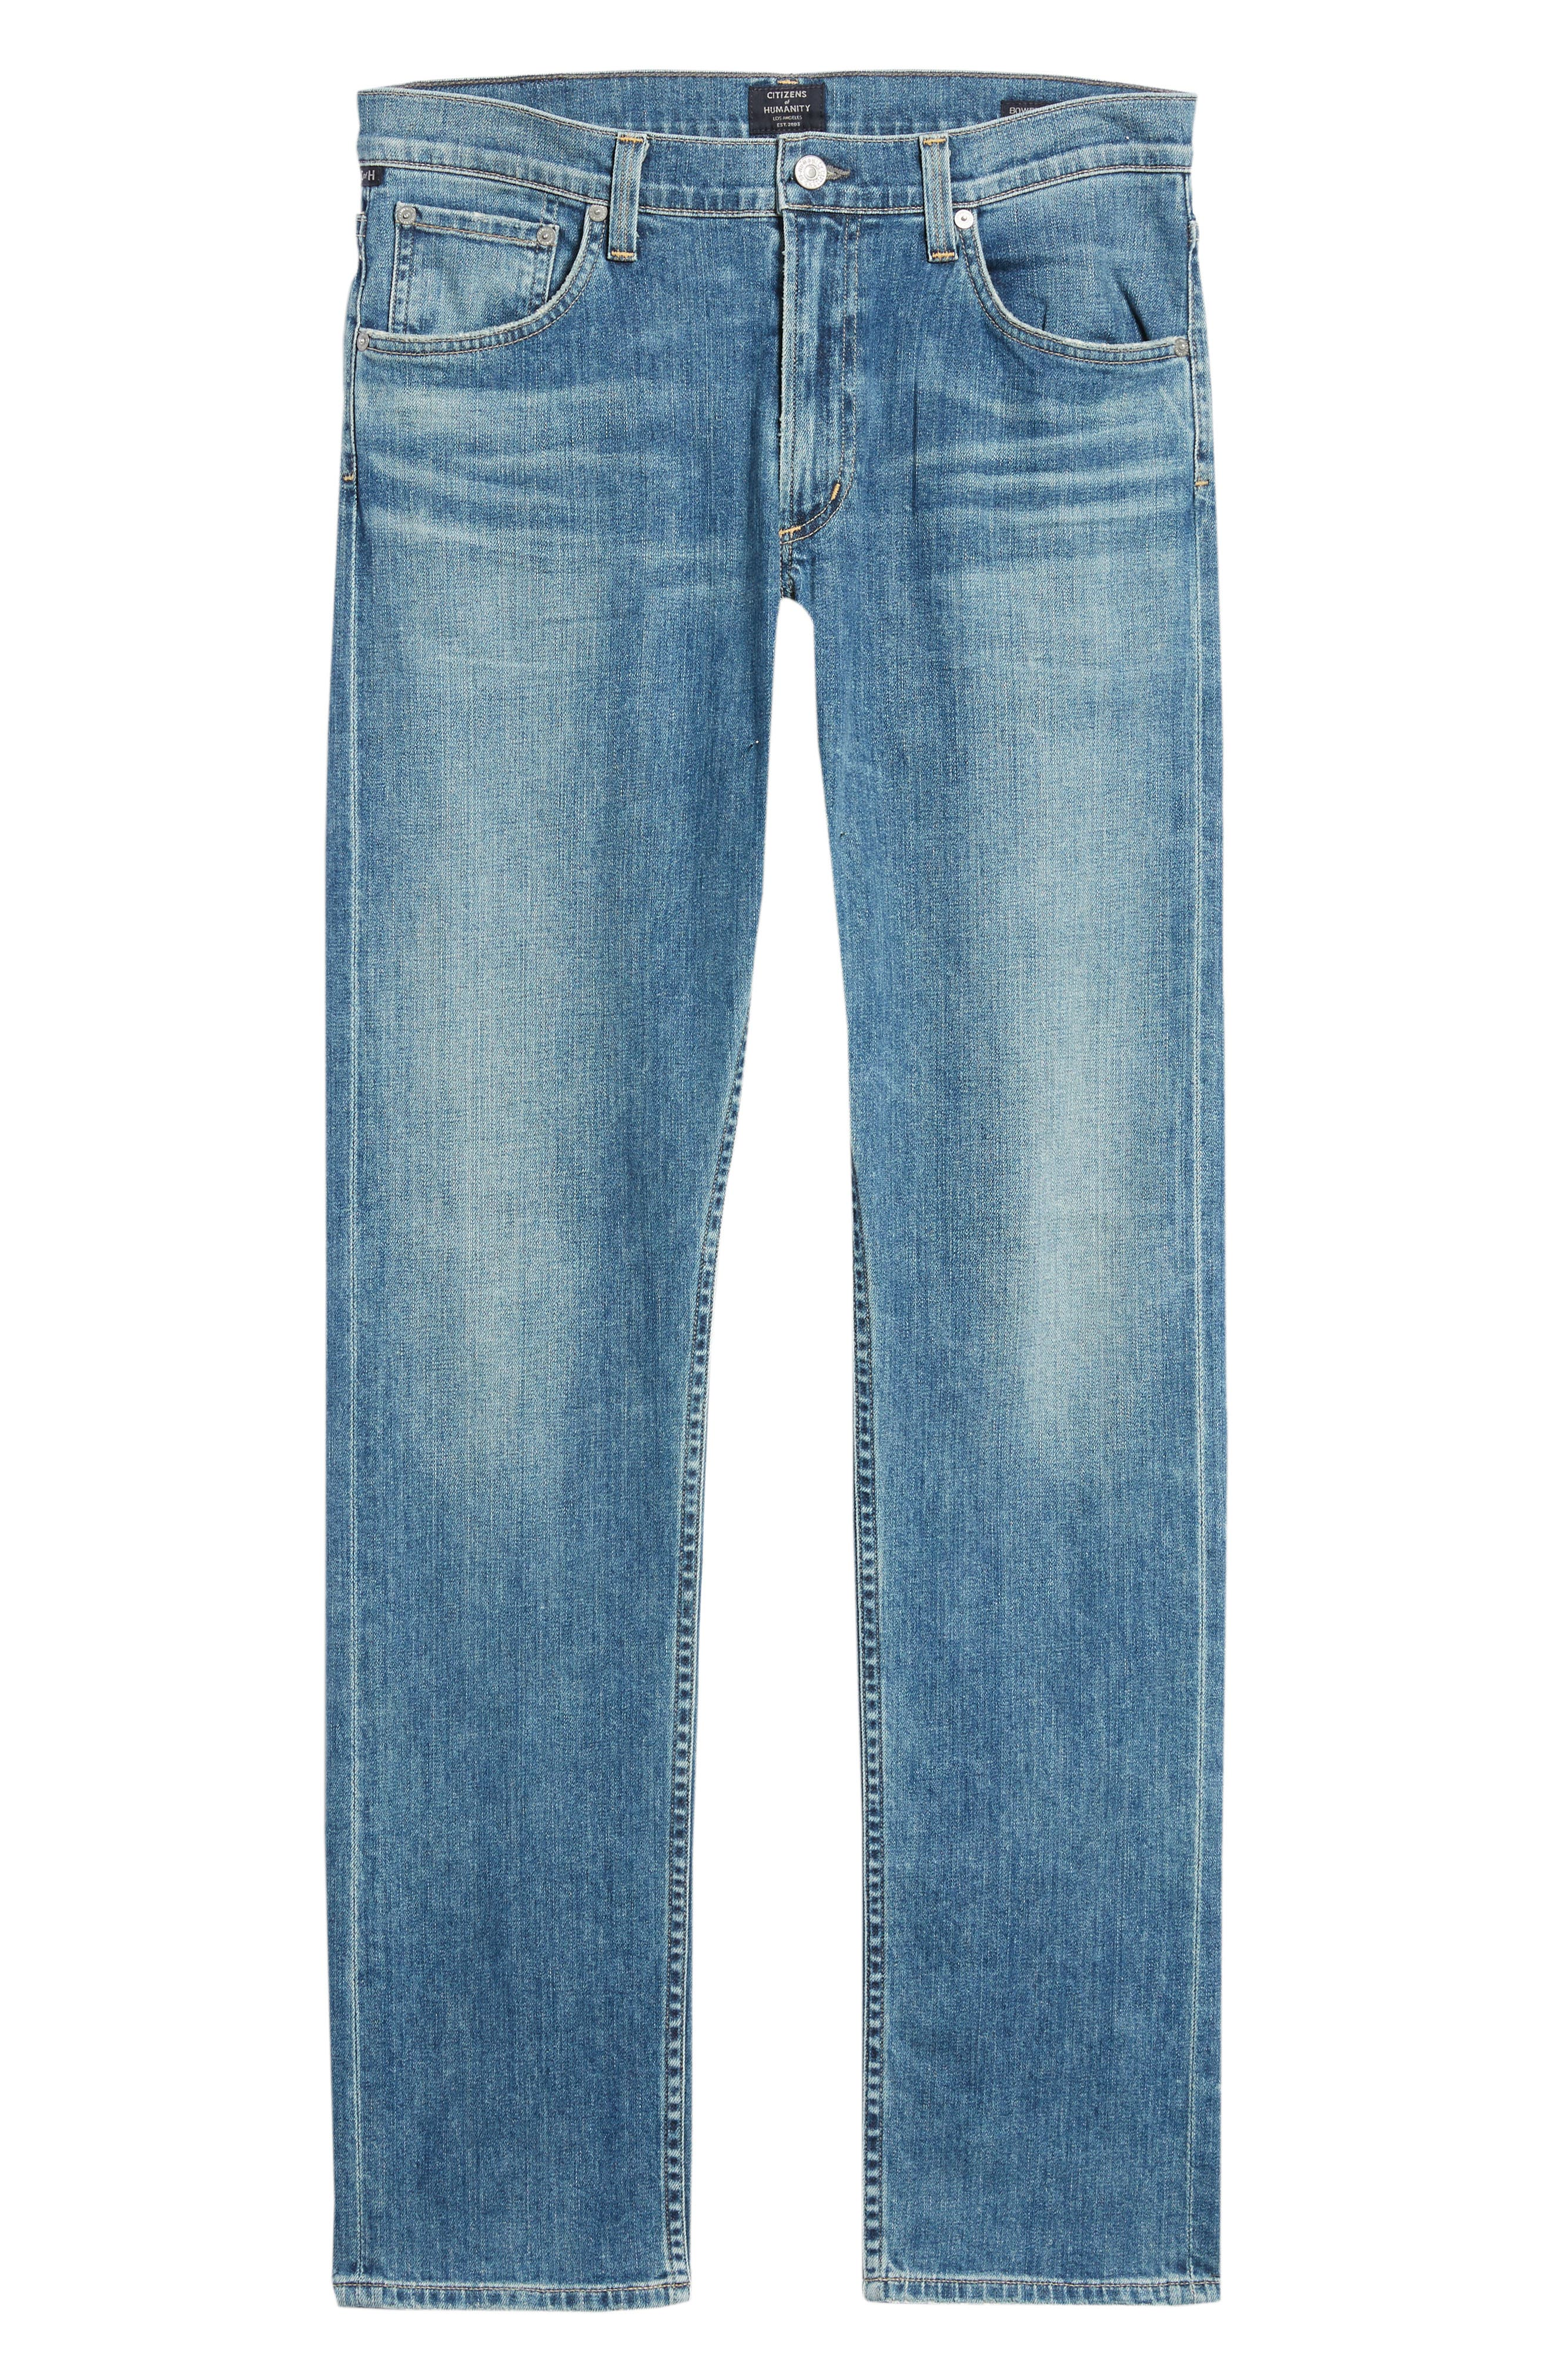 Bowery Slim Fit Jeans,                             Alternate thumbnail 6, color,                             ALAND